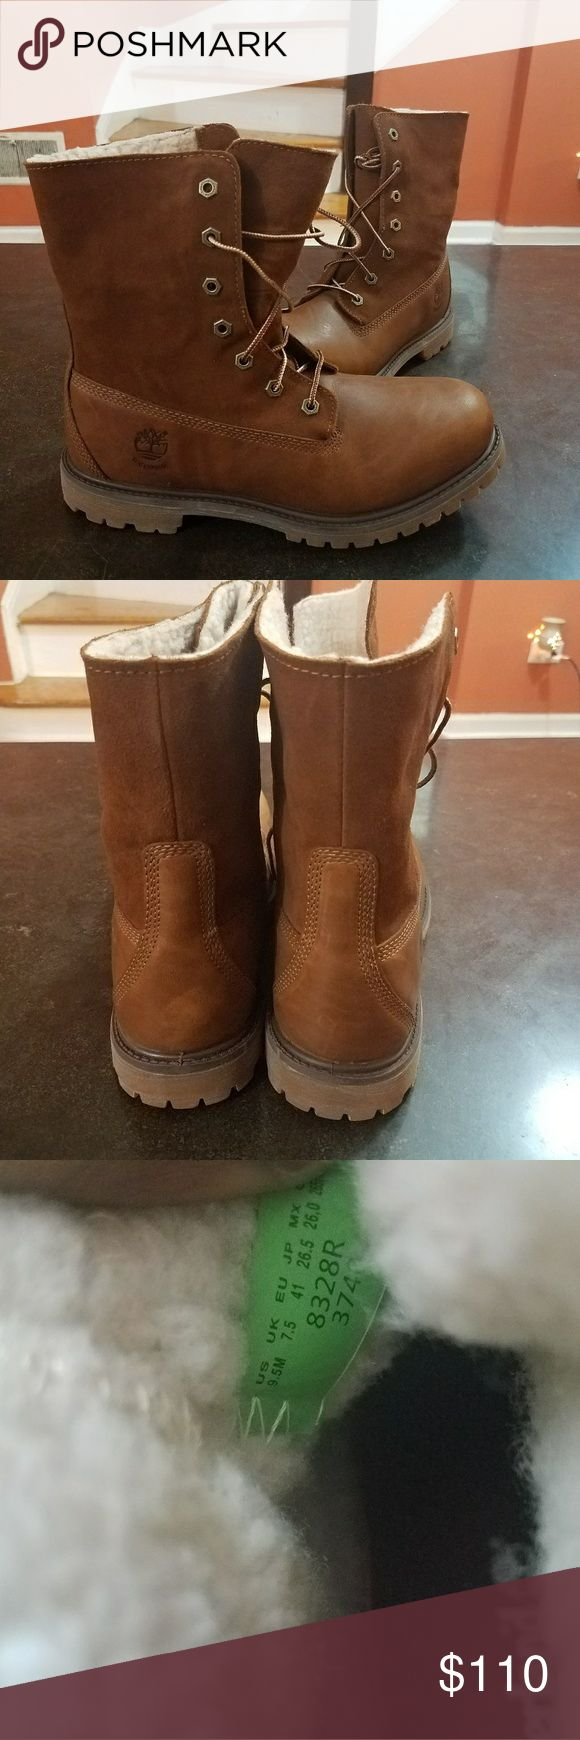 Brown timberland boots Cozy brown timberland boots Timberland Shoes Winter & Rain Boots